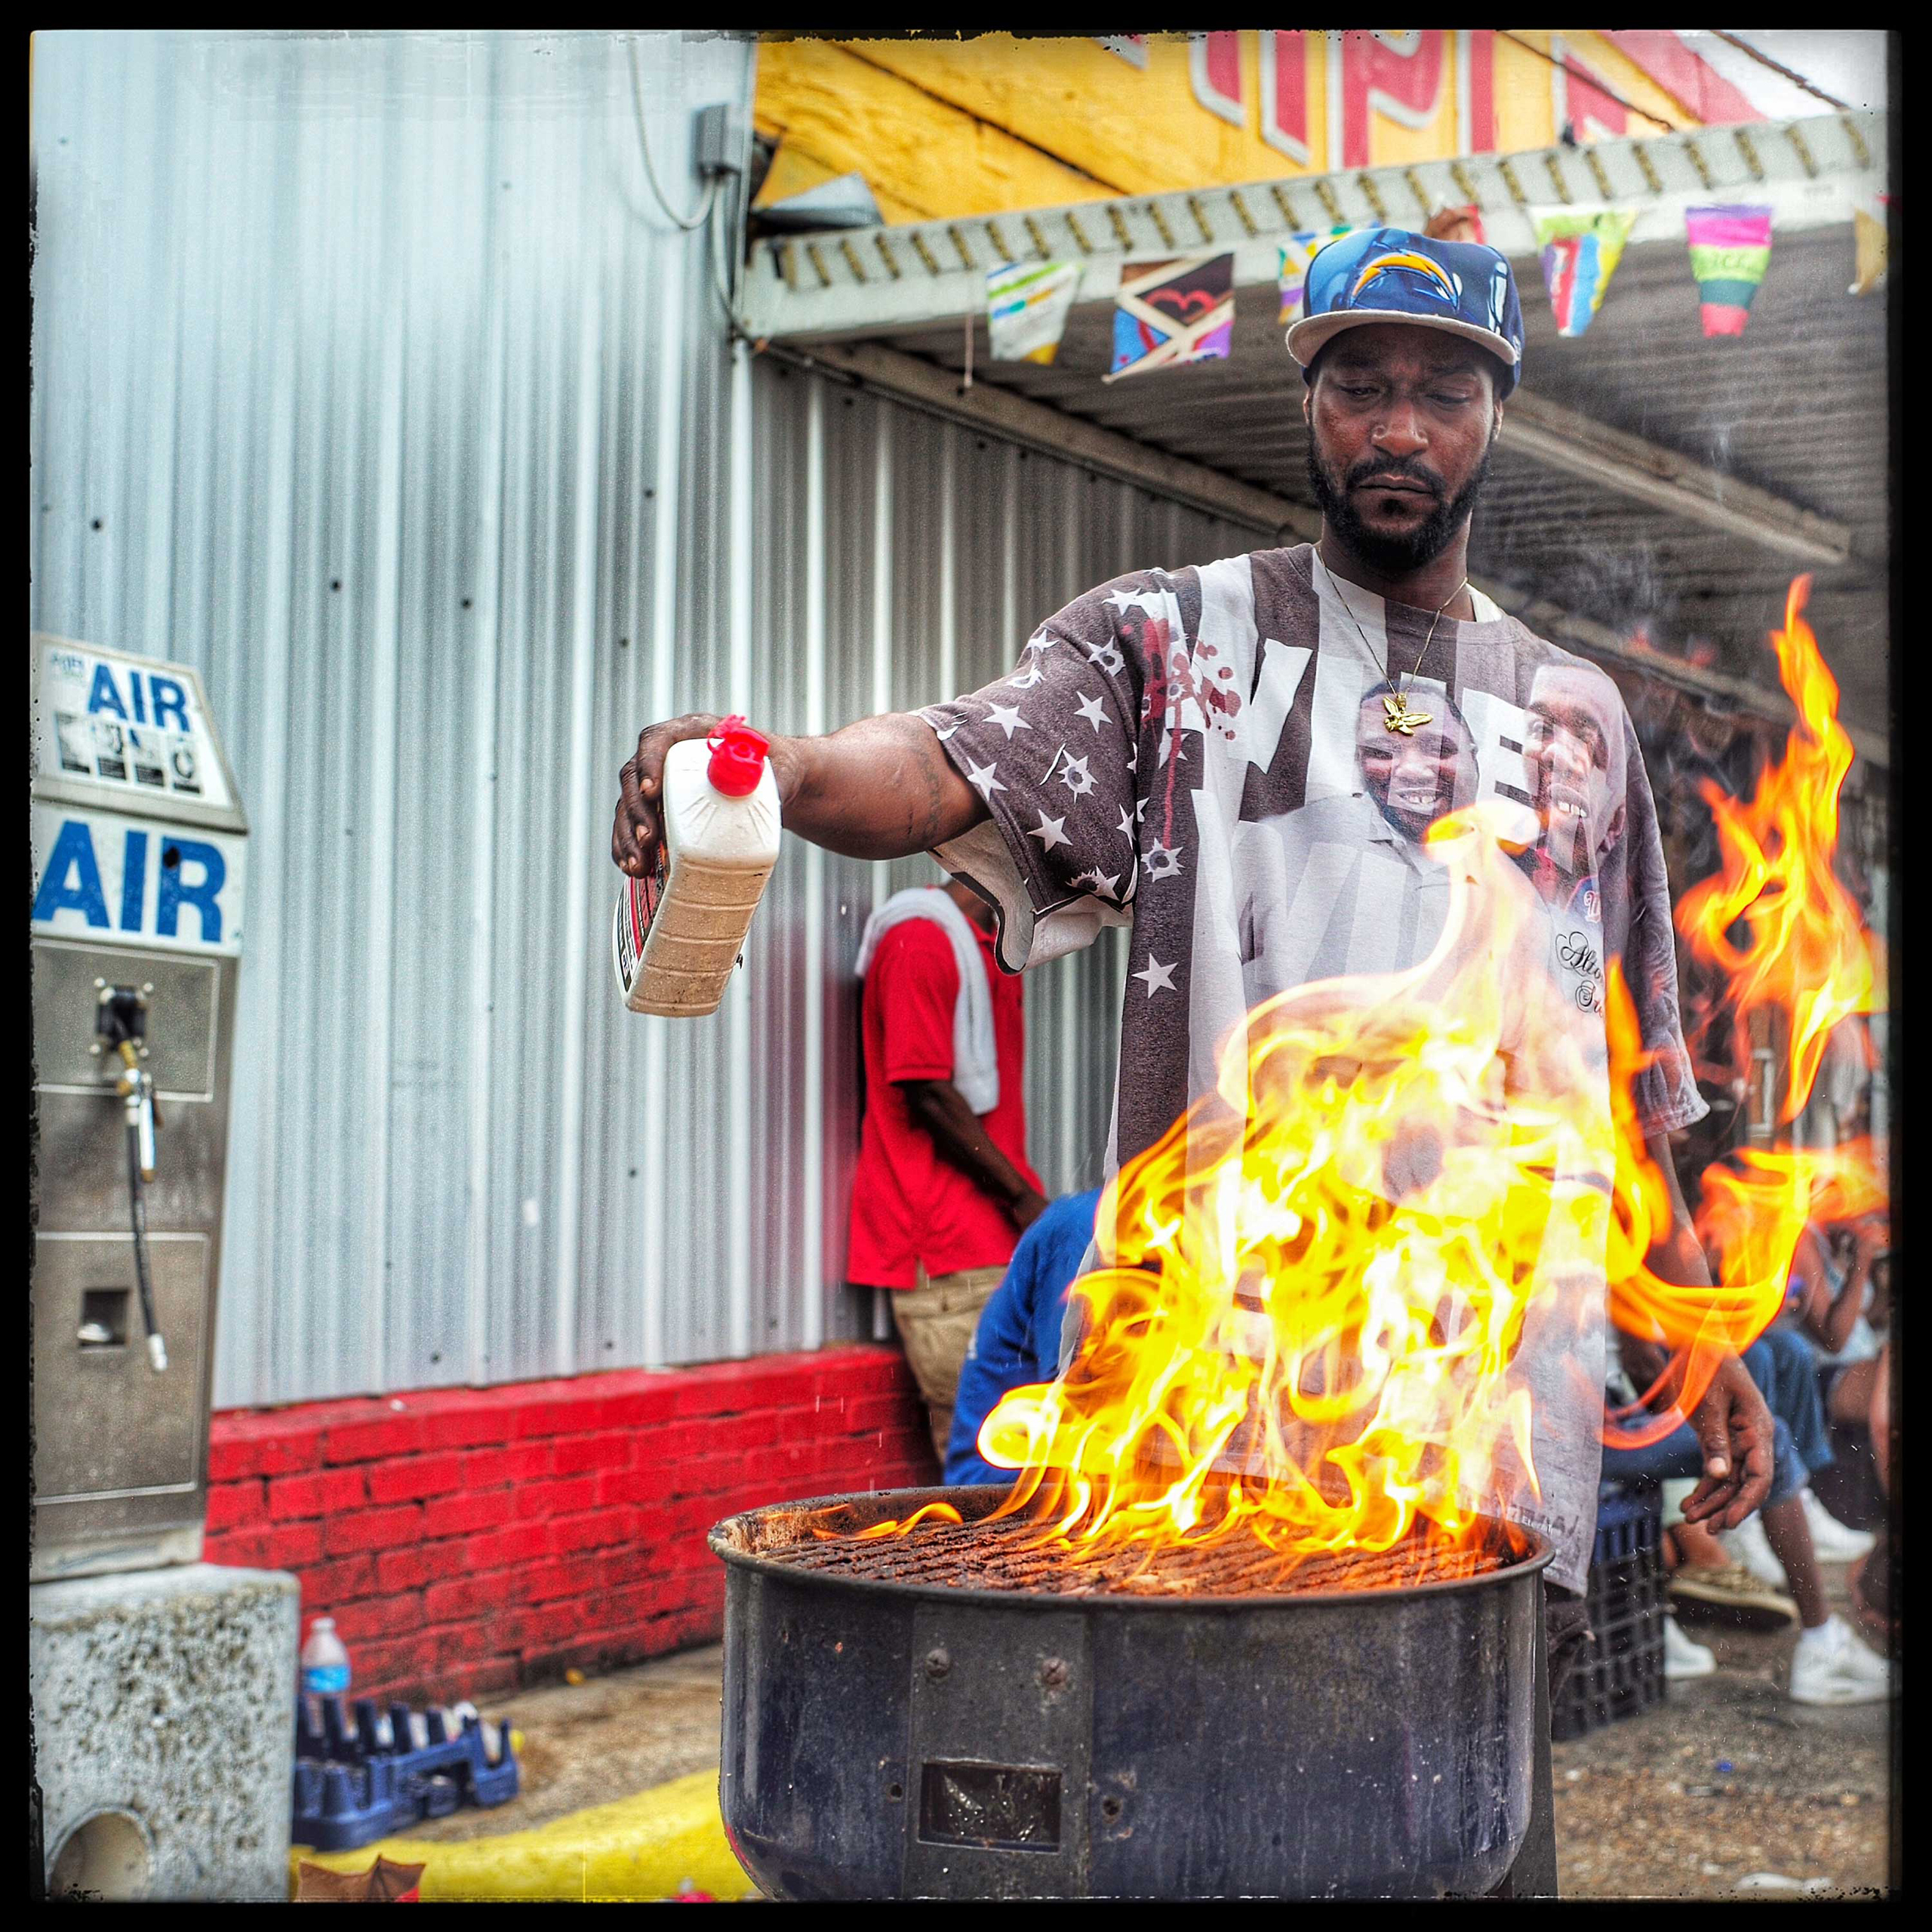 Baton Rouge, La:  Yes Sir, June like the month,  he said with a half smile. June has taken up the responsibility of helping to feed the small gathering that congregates in front of the Triple S Food Mart to pay their respects and grieve over the death of Alton Sterling.  I am here for everyone. Whoever comes here and need food I got them,  he said.